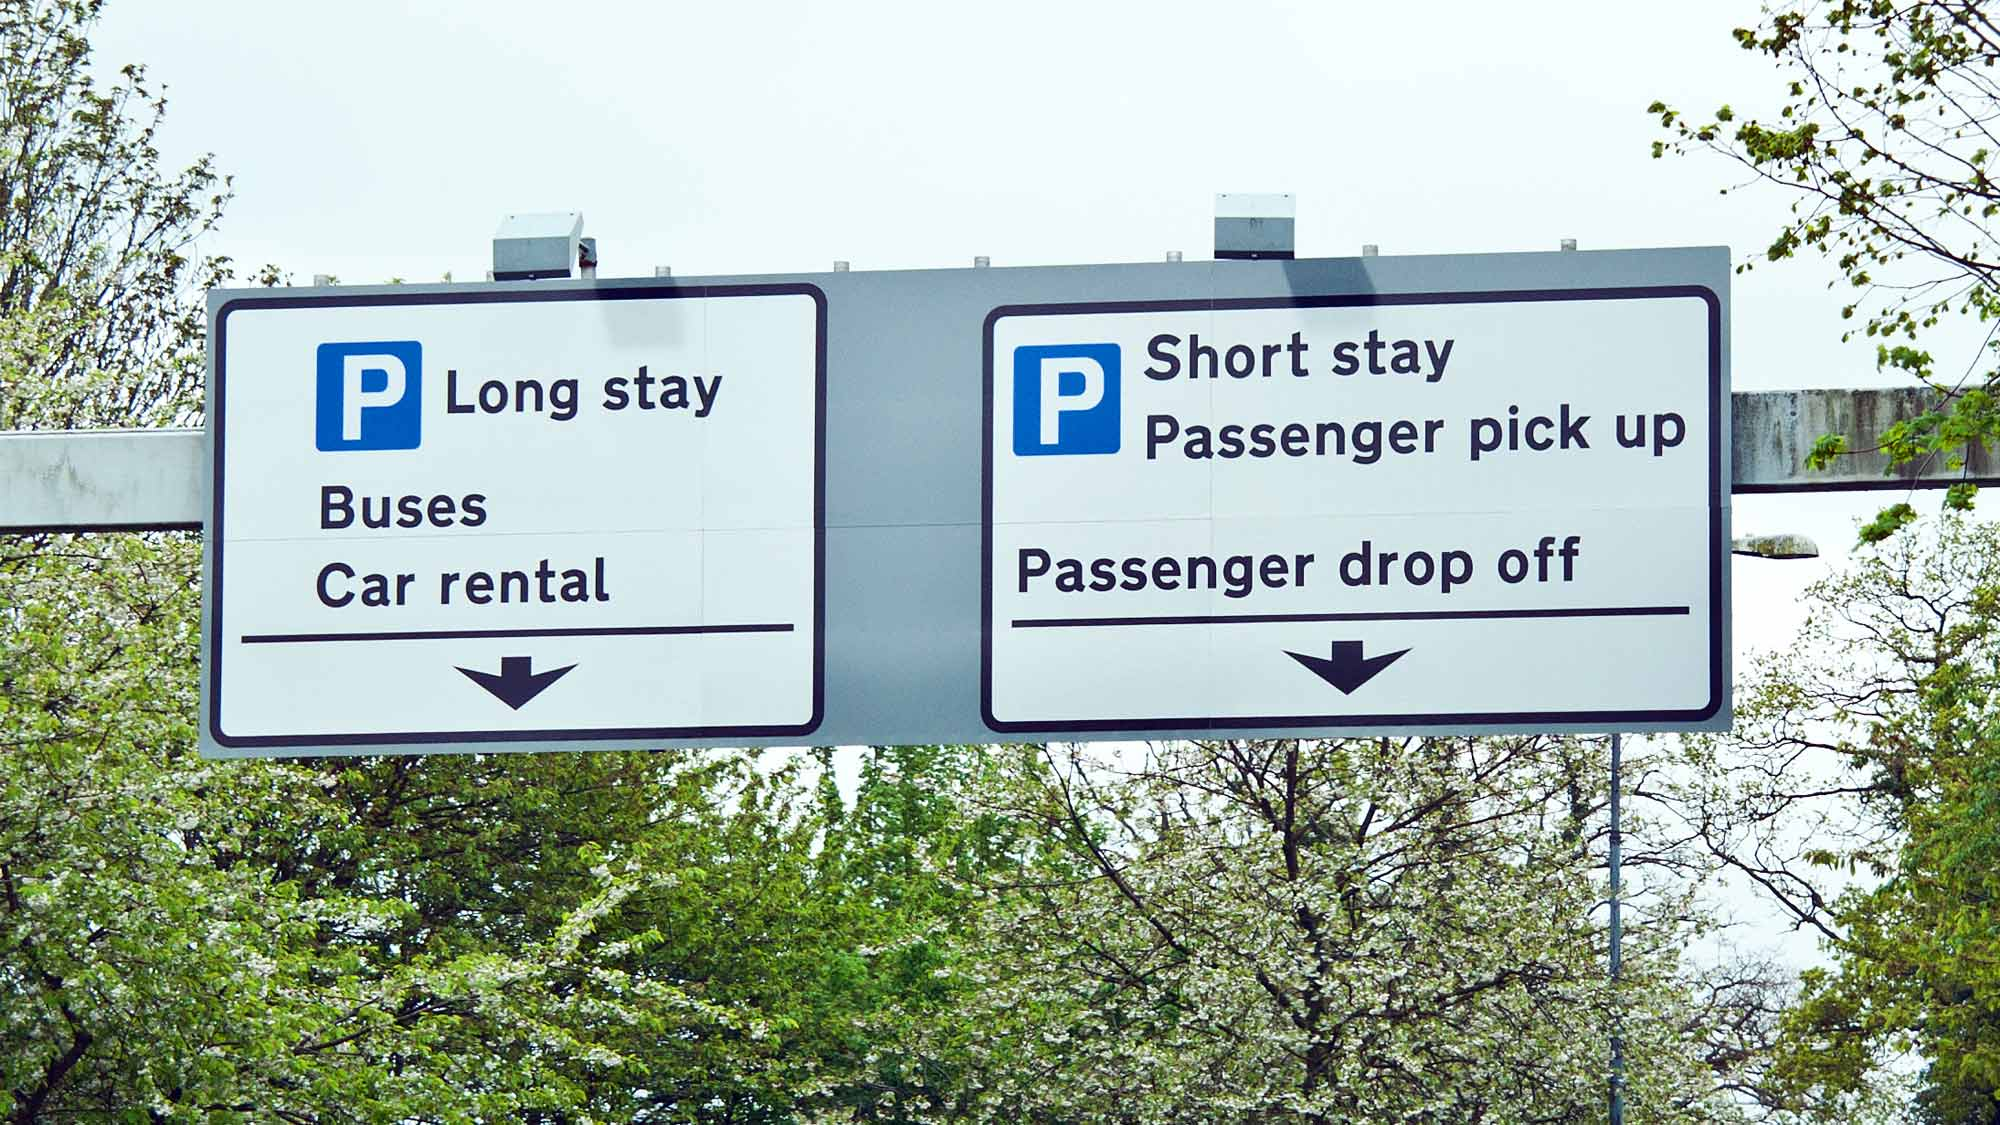 Gatwick Airport Parking Discount Code. If you're looking to save money on your parking at Gatwick, you've come to the right place. Holiday Extras are giving you an extra 10% off our already low prices with our Gatwick parking promo code